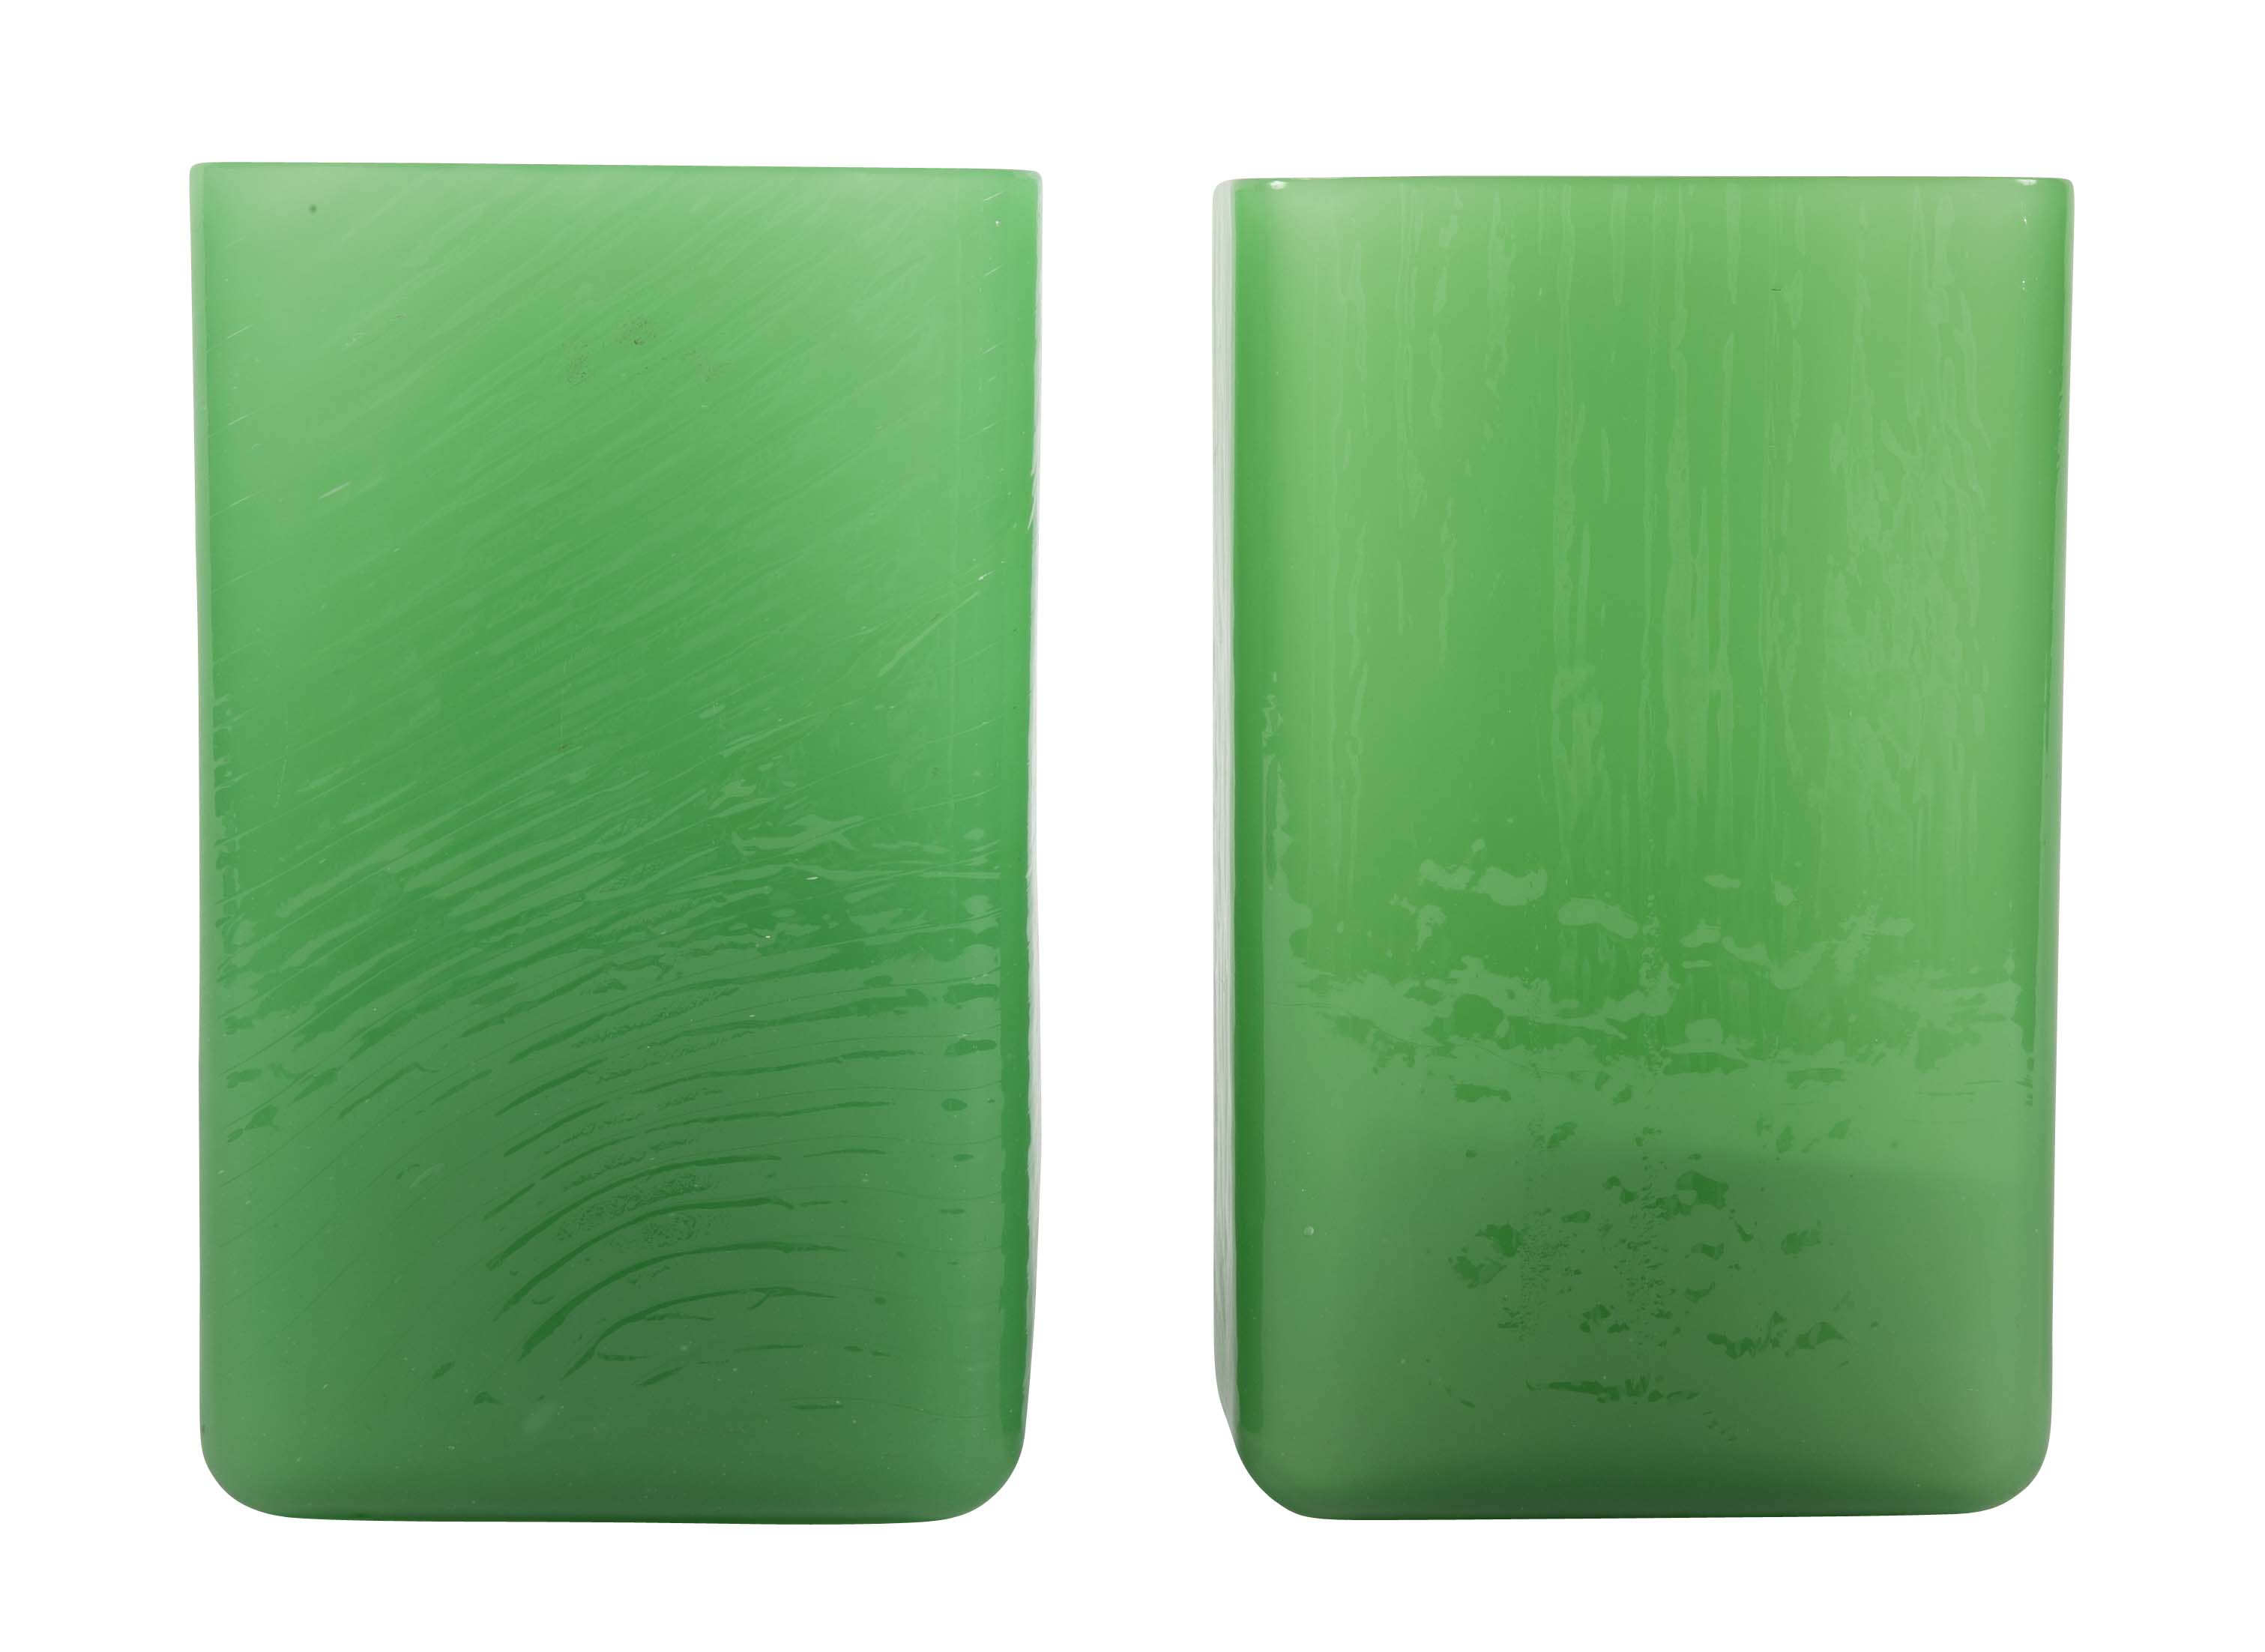 Matched Pair of Jade Glass Rectangular Vases Attributed to Steuben